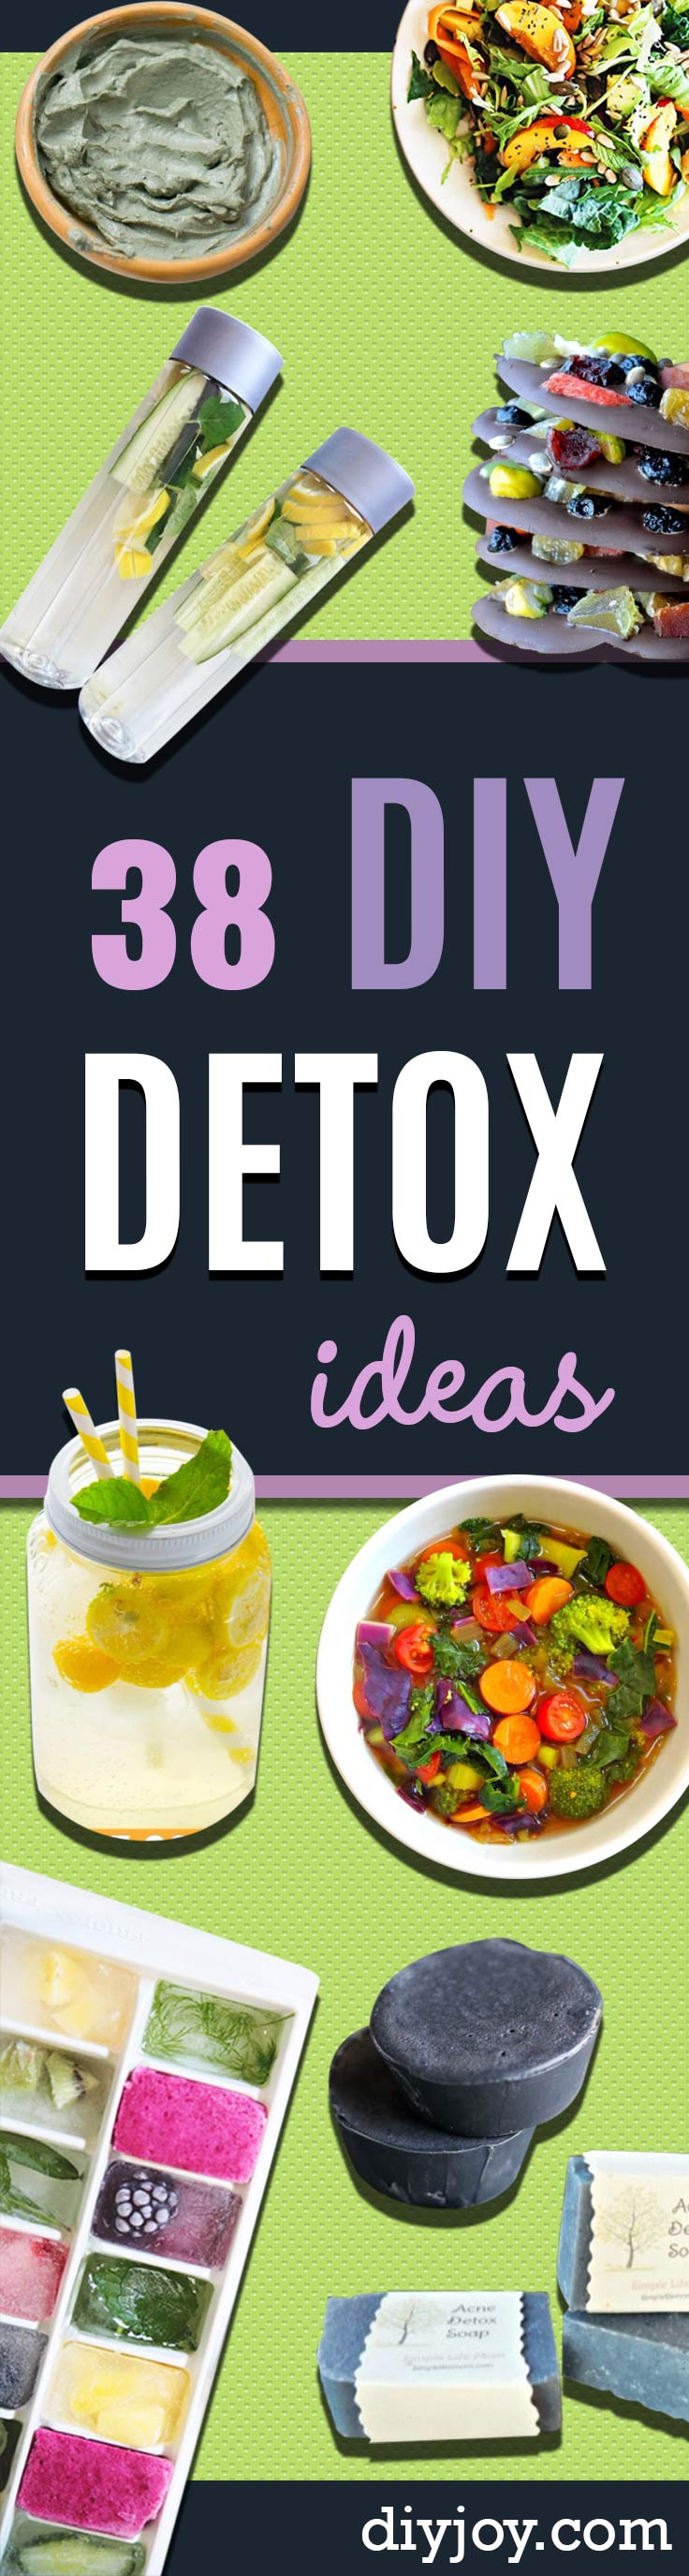 How to lose weight fast without diet pills